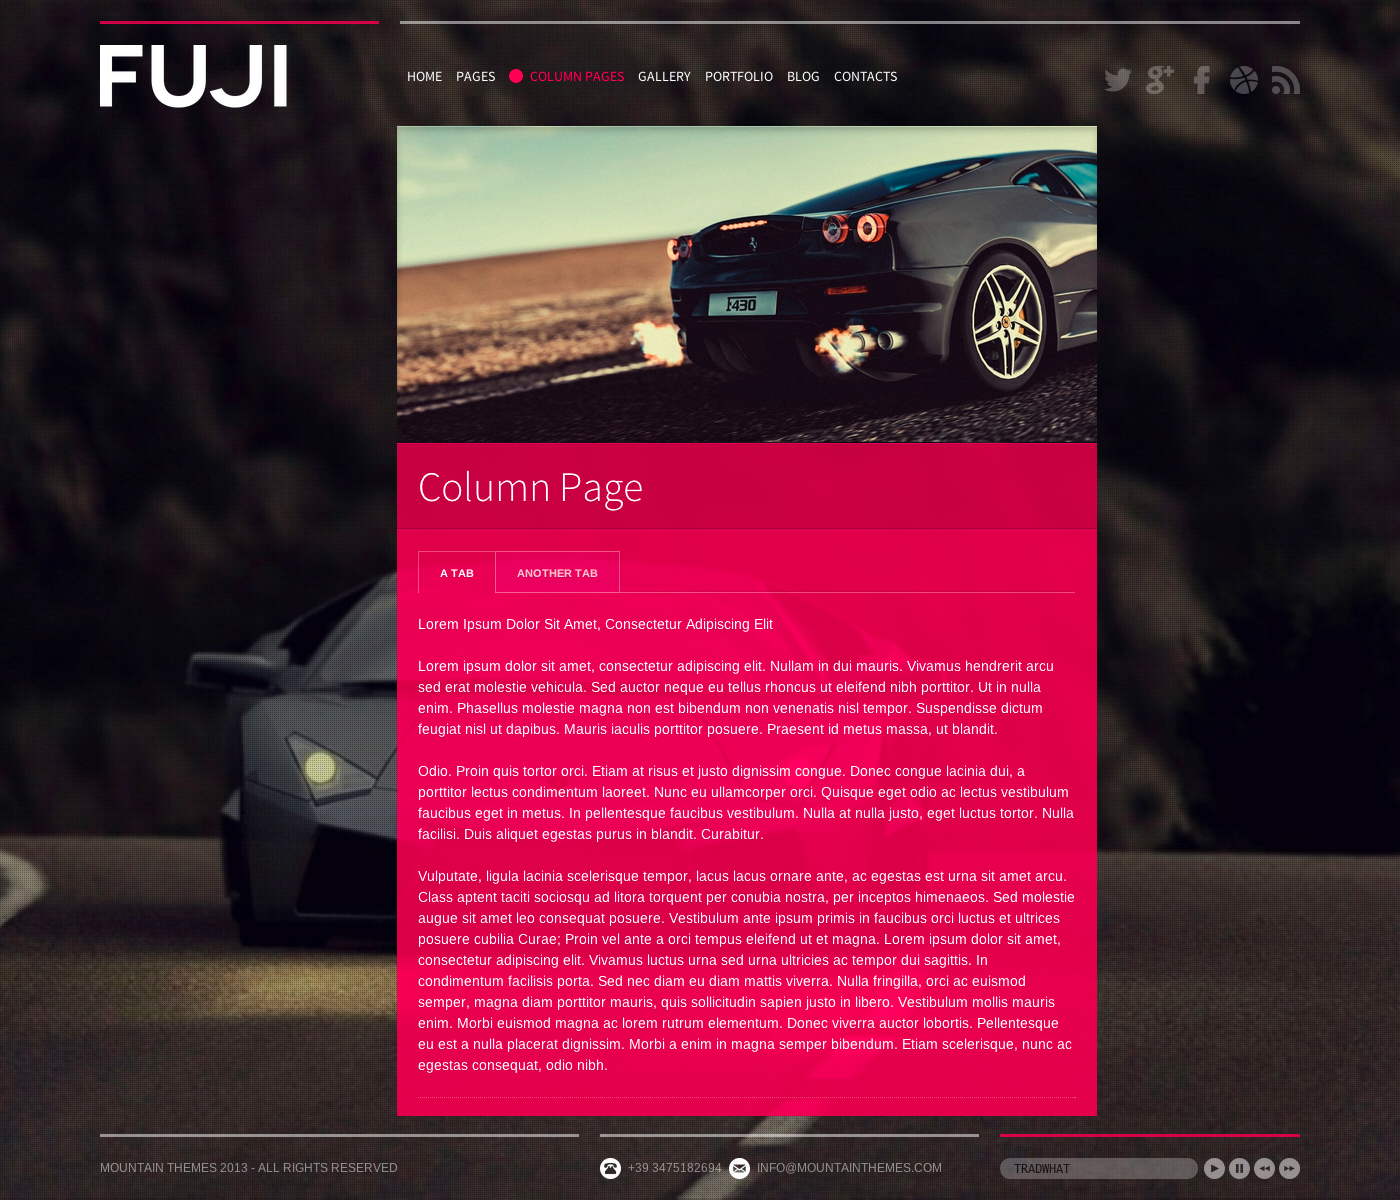 Fuji - Full Screen, Responsive & Retina Ready